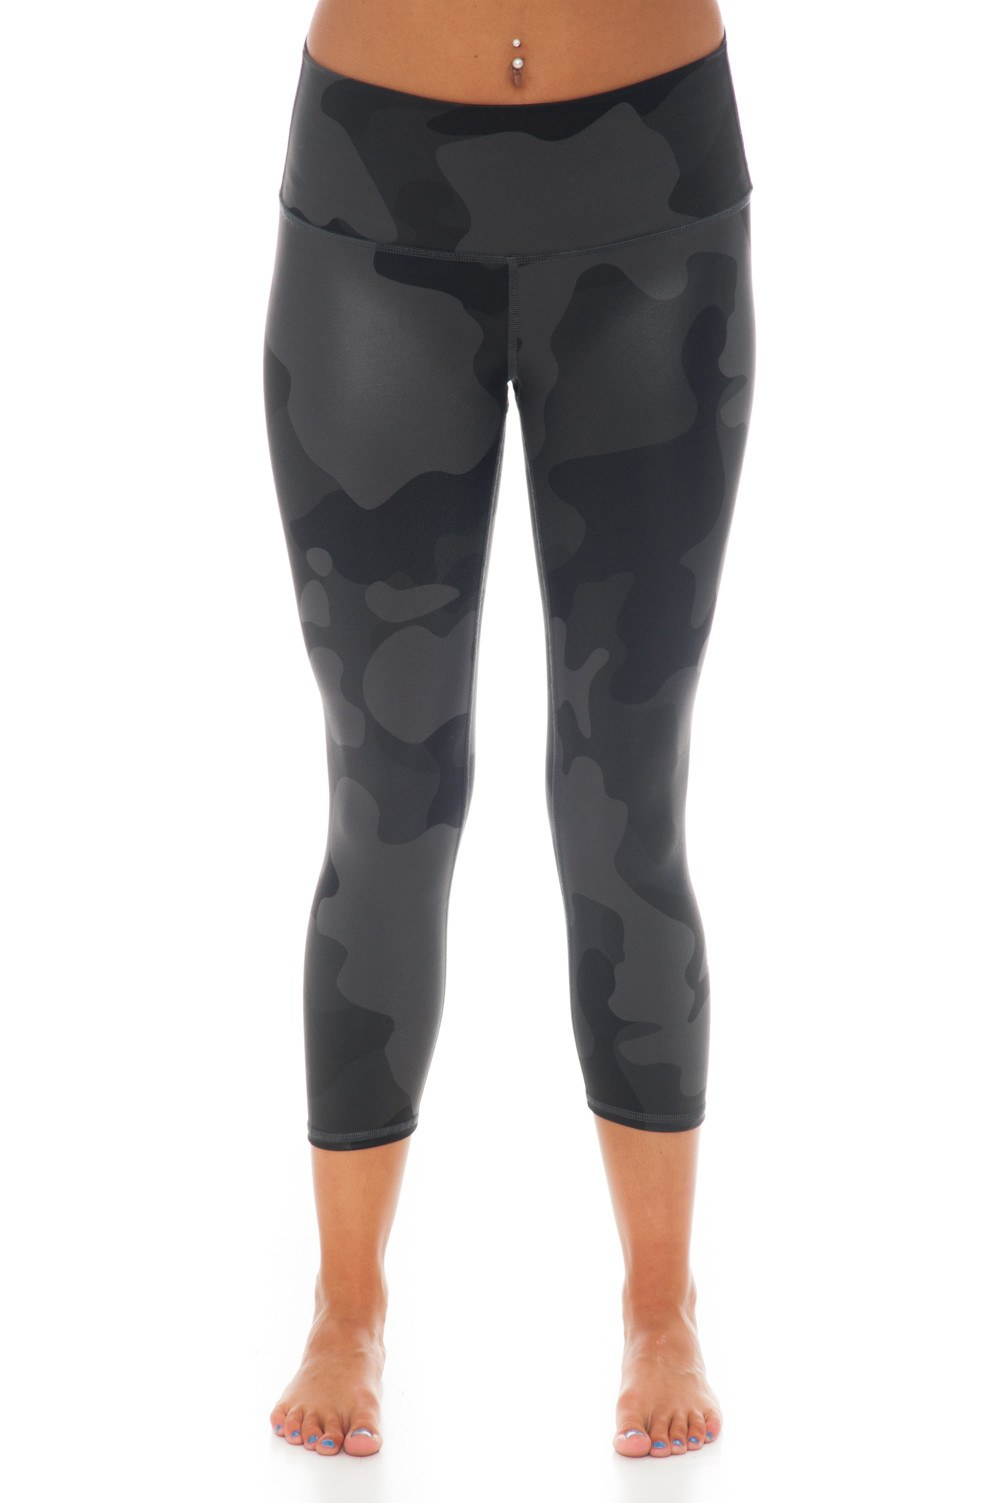 Legging - Alo High Waist Airbrush - 1